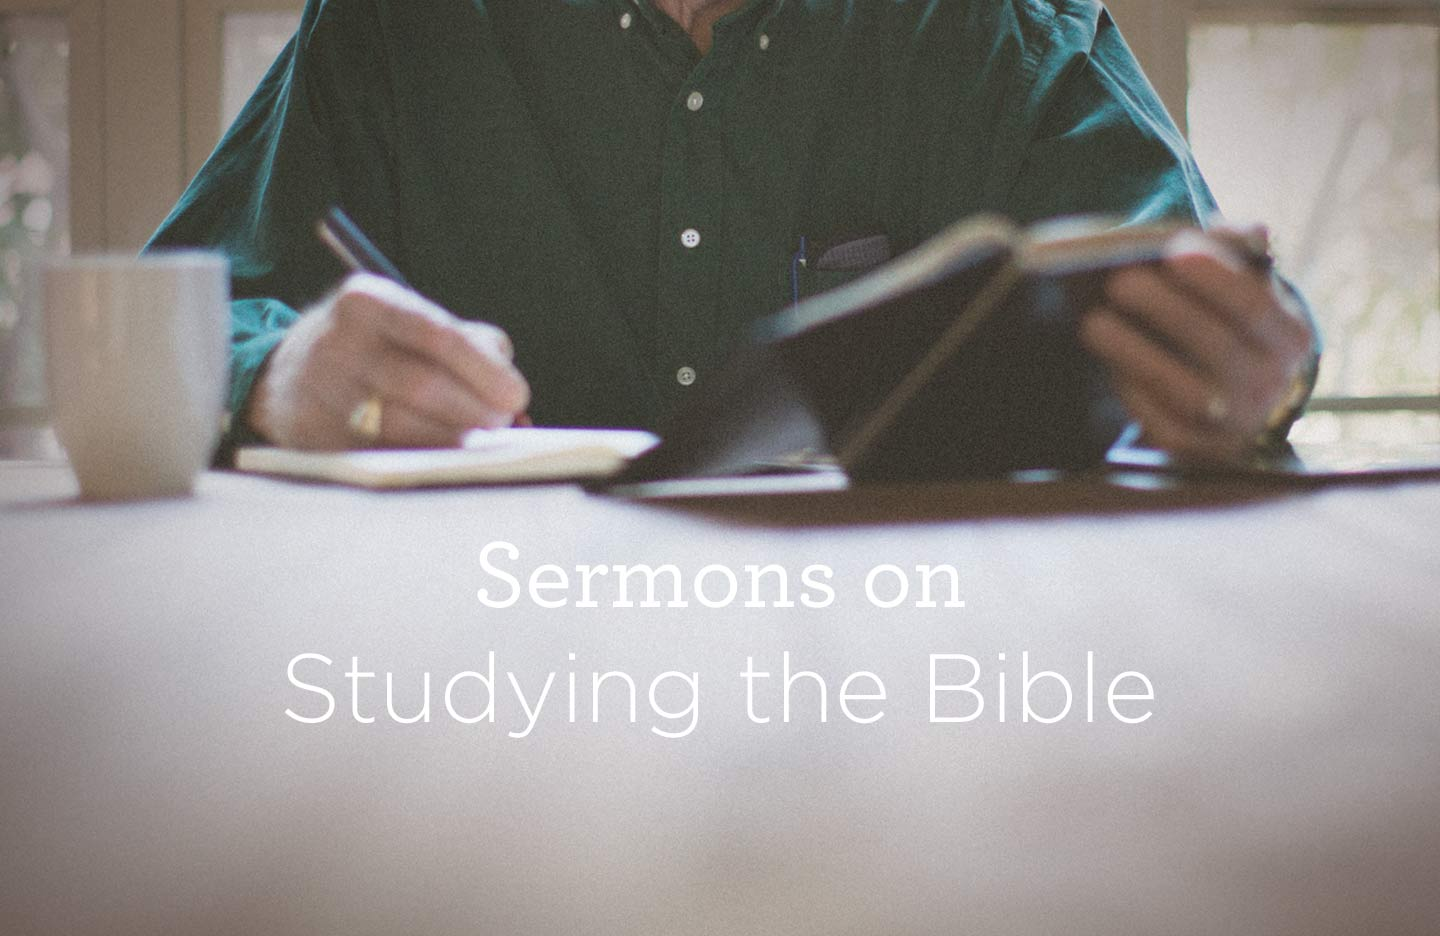 Sermons-on-Studying-the-Bible.jpg